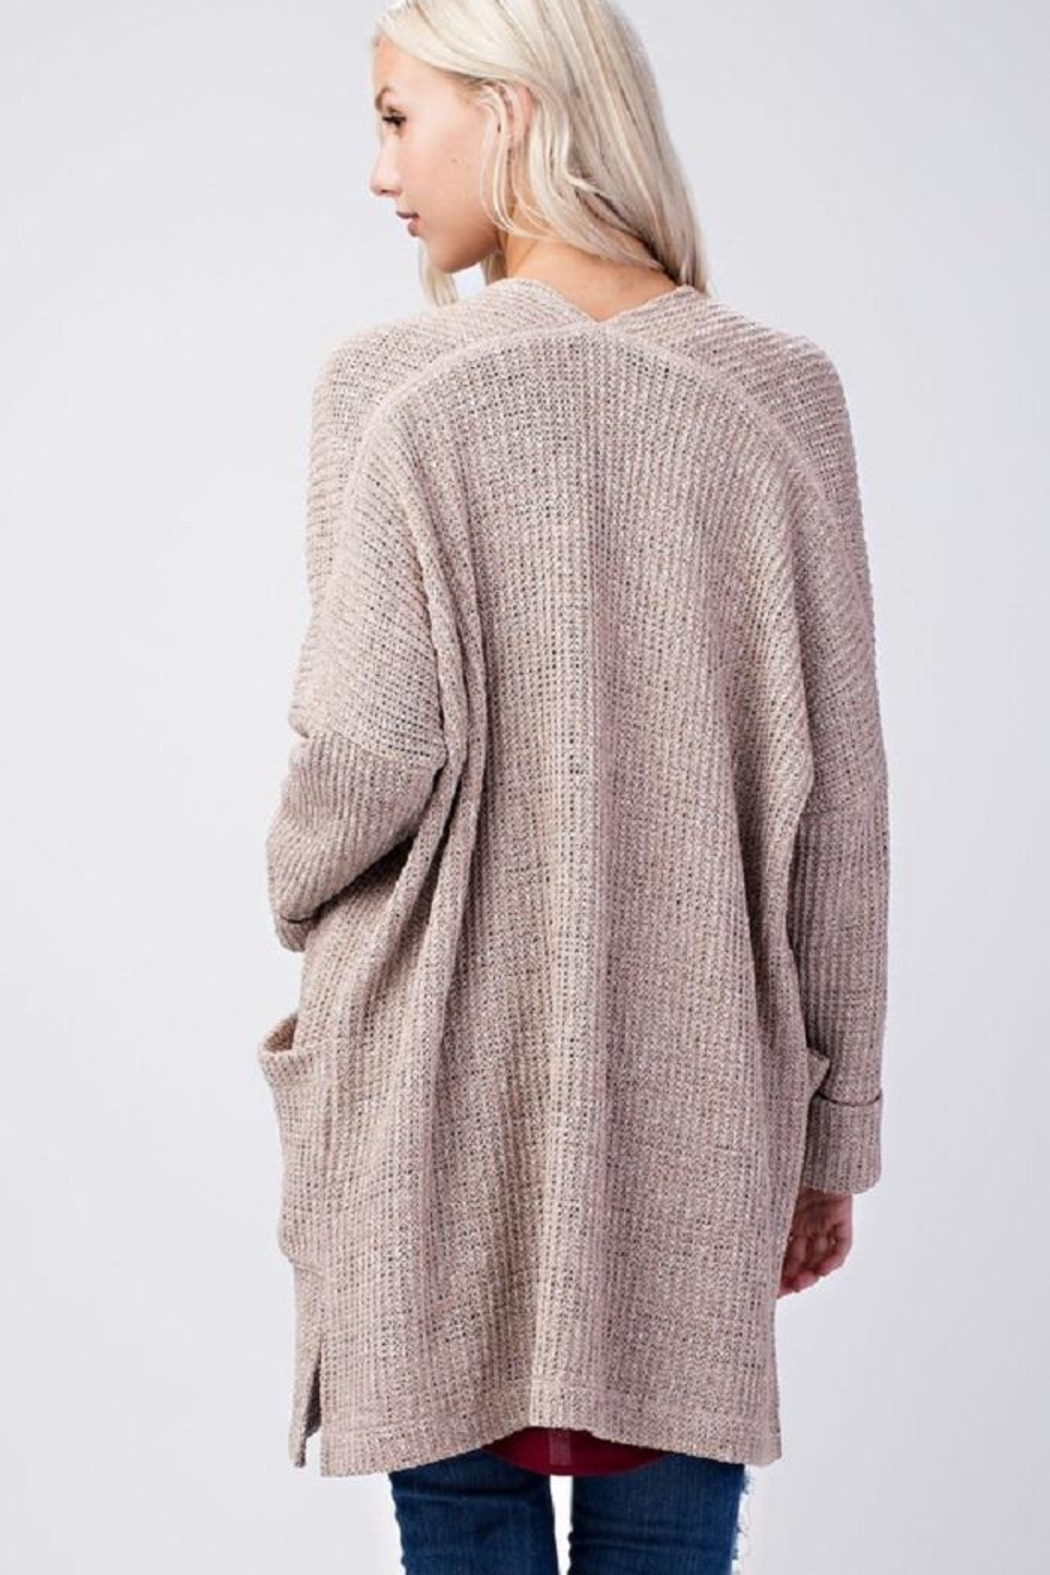 Final Touch Beige Knit Cardigan - Front Full Image